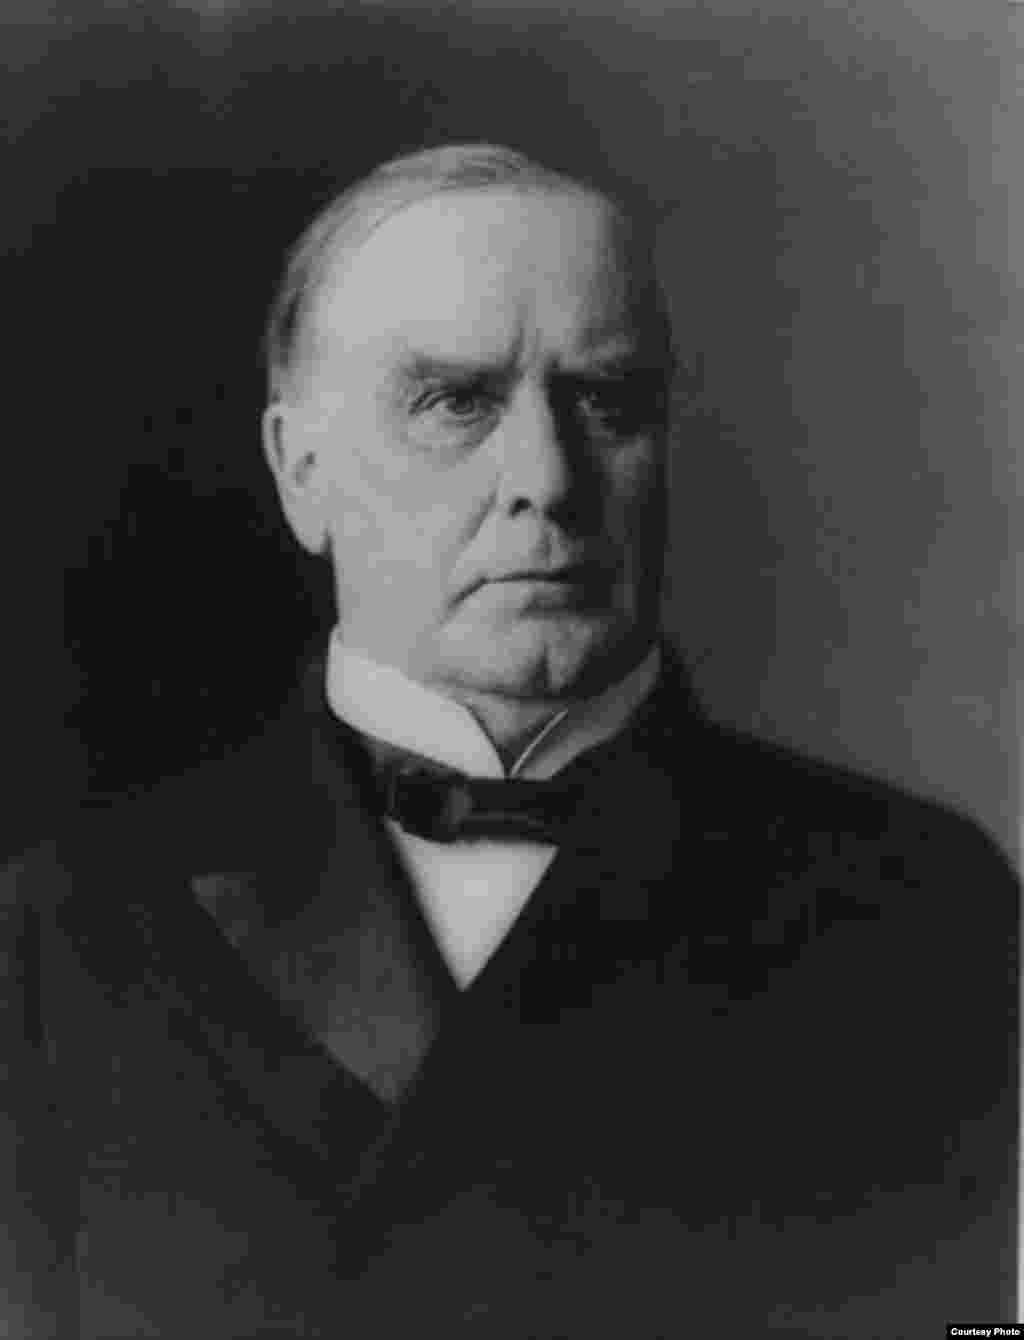 U.S. President William McKinley was shot by a lone assassin in Buffalo, New York, on September 5, 1901. - McKinley's assassin was anarchist Leon Frank Czolgosz. McKinley, a bullet still lodged in his back, died on September 14 from complications surrounding his wounds.